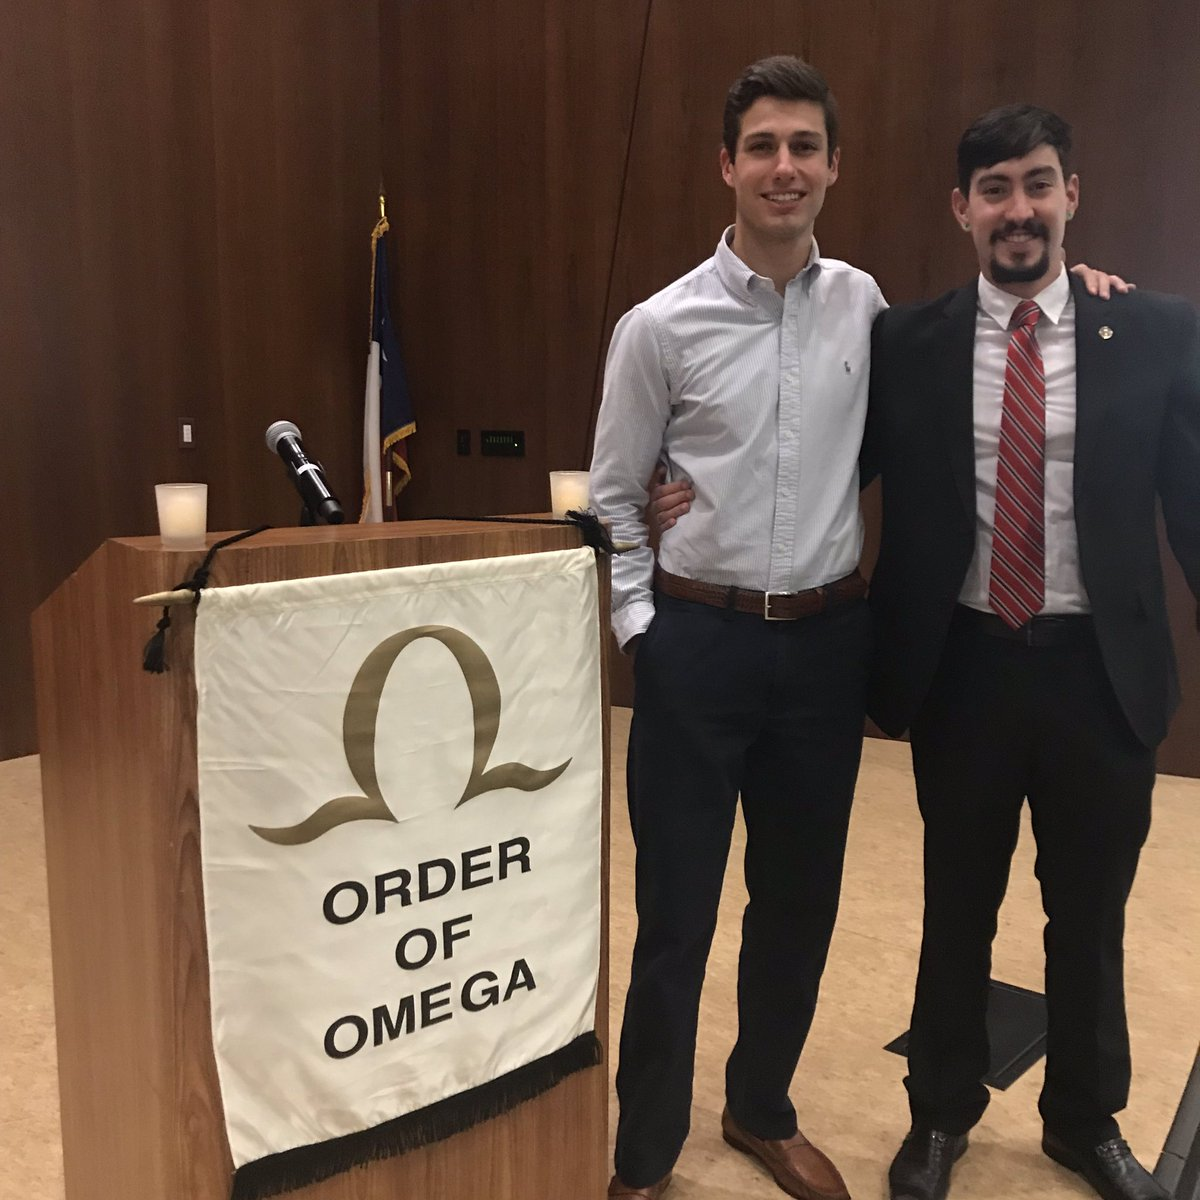 Congratulations To Our Brothers Logan And Pedro For Getting Initiated Into The Order Of Omega An Greek Honor Organization Dedication Uphold High